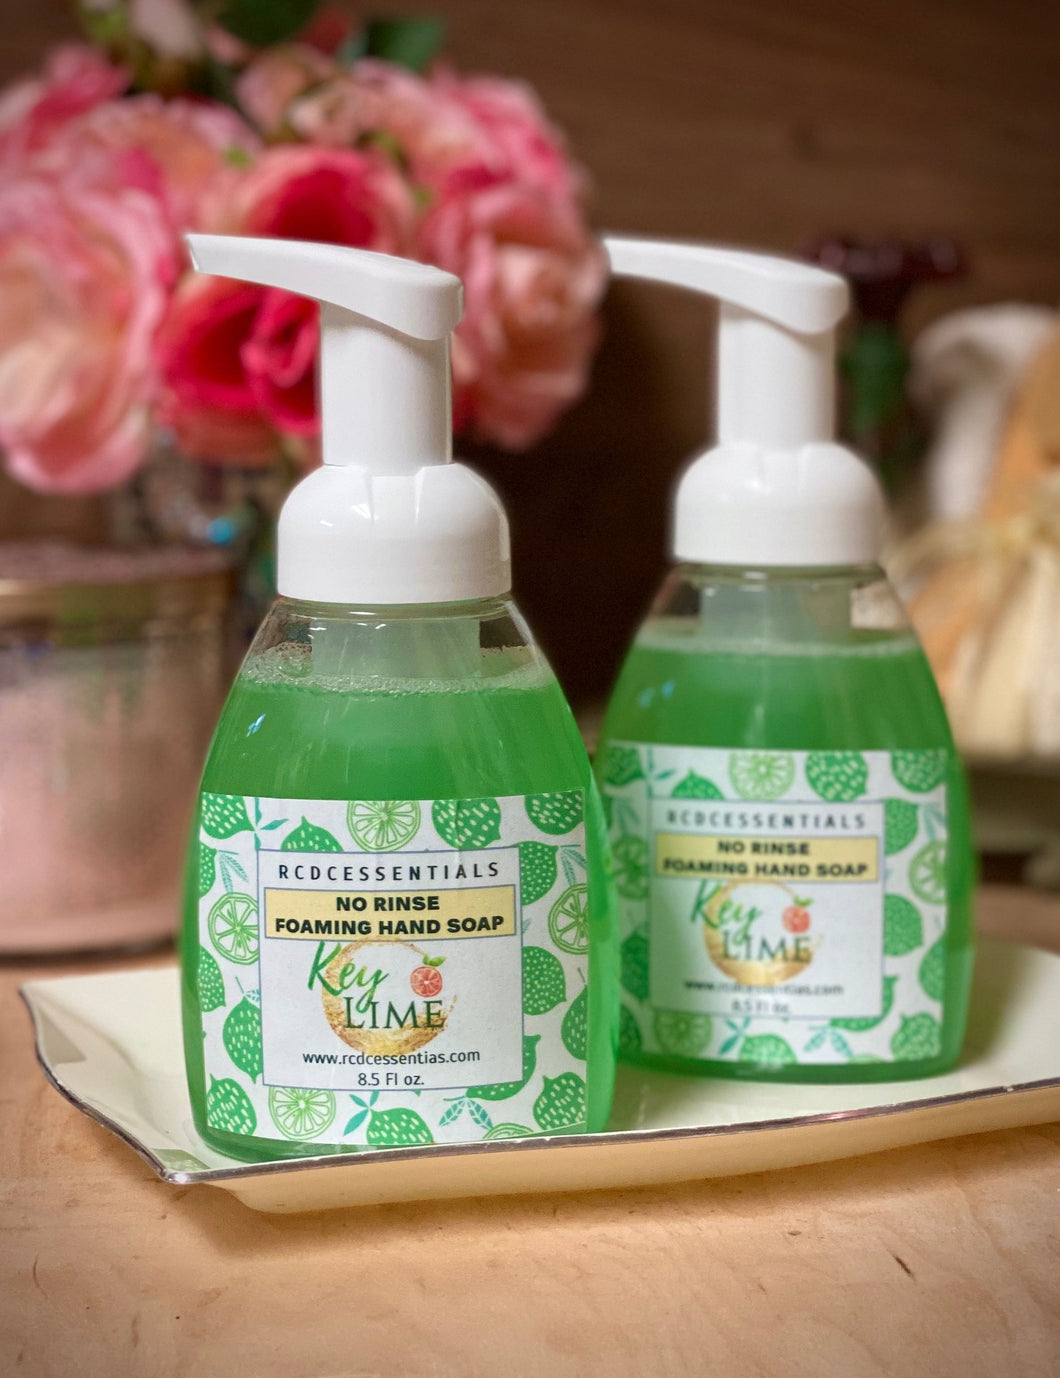 Key Lime ~ No Rinse Foaming Hand Wash Cleans Hands Without The Use Of Water!